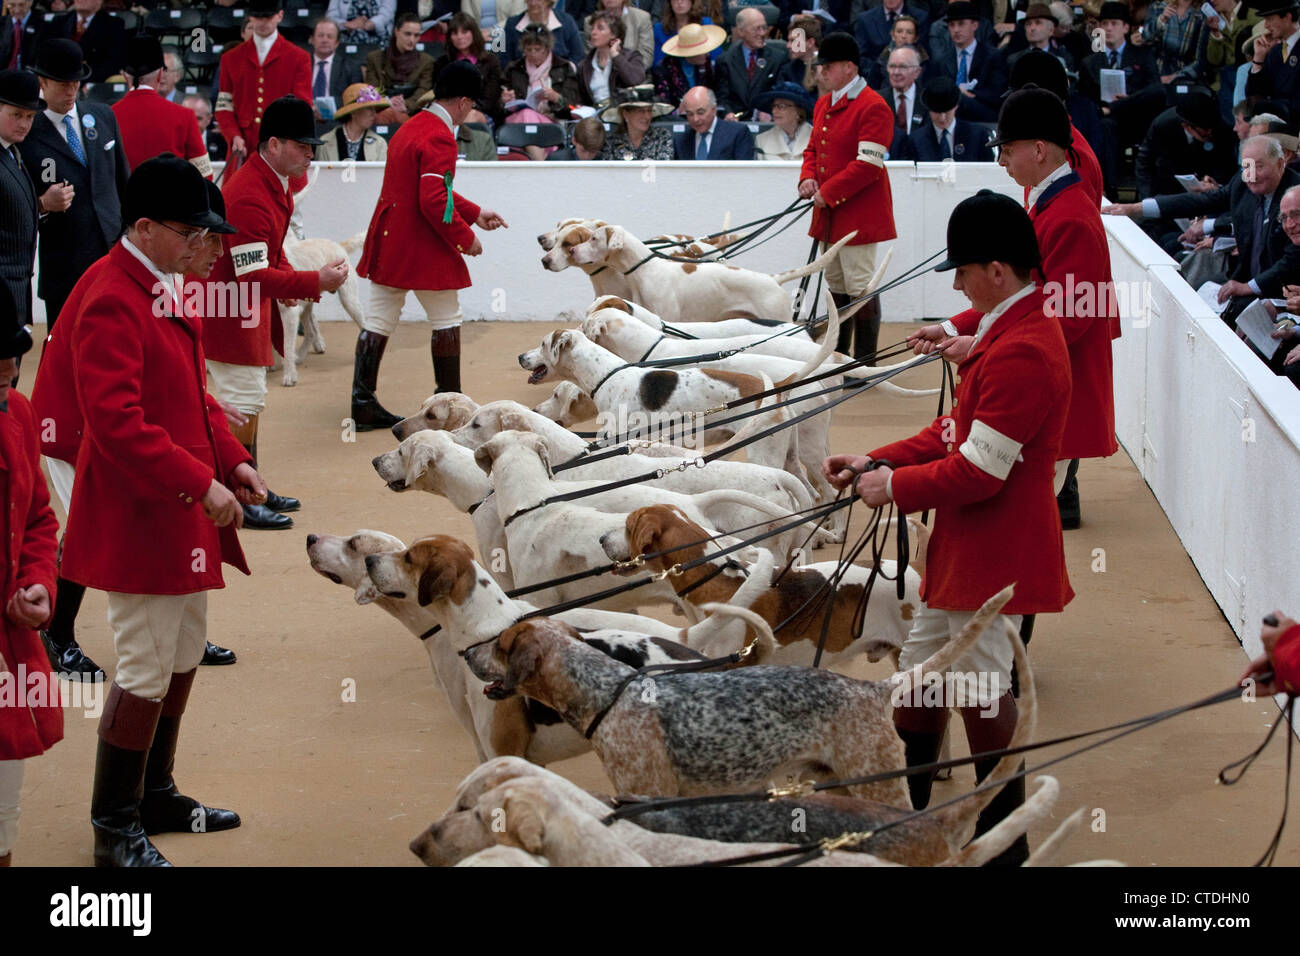 Fox hunts from across the country show hounds at the 2012 Royal Fox Hound Show held at the Festival of Hunting - Stock Image